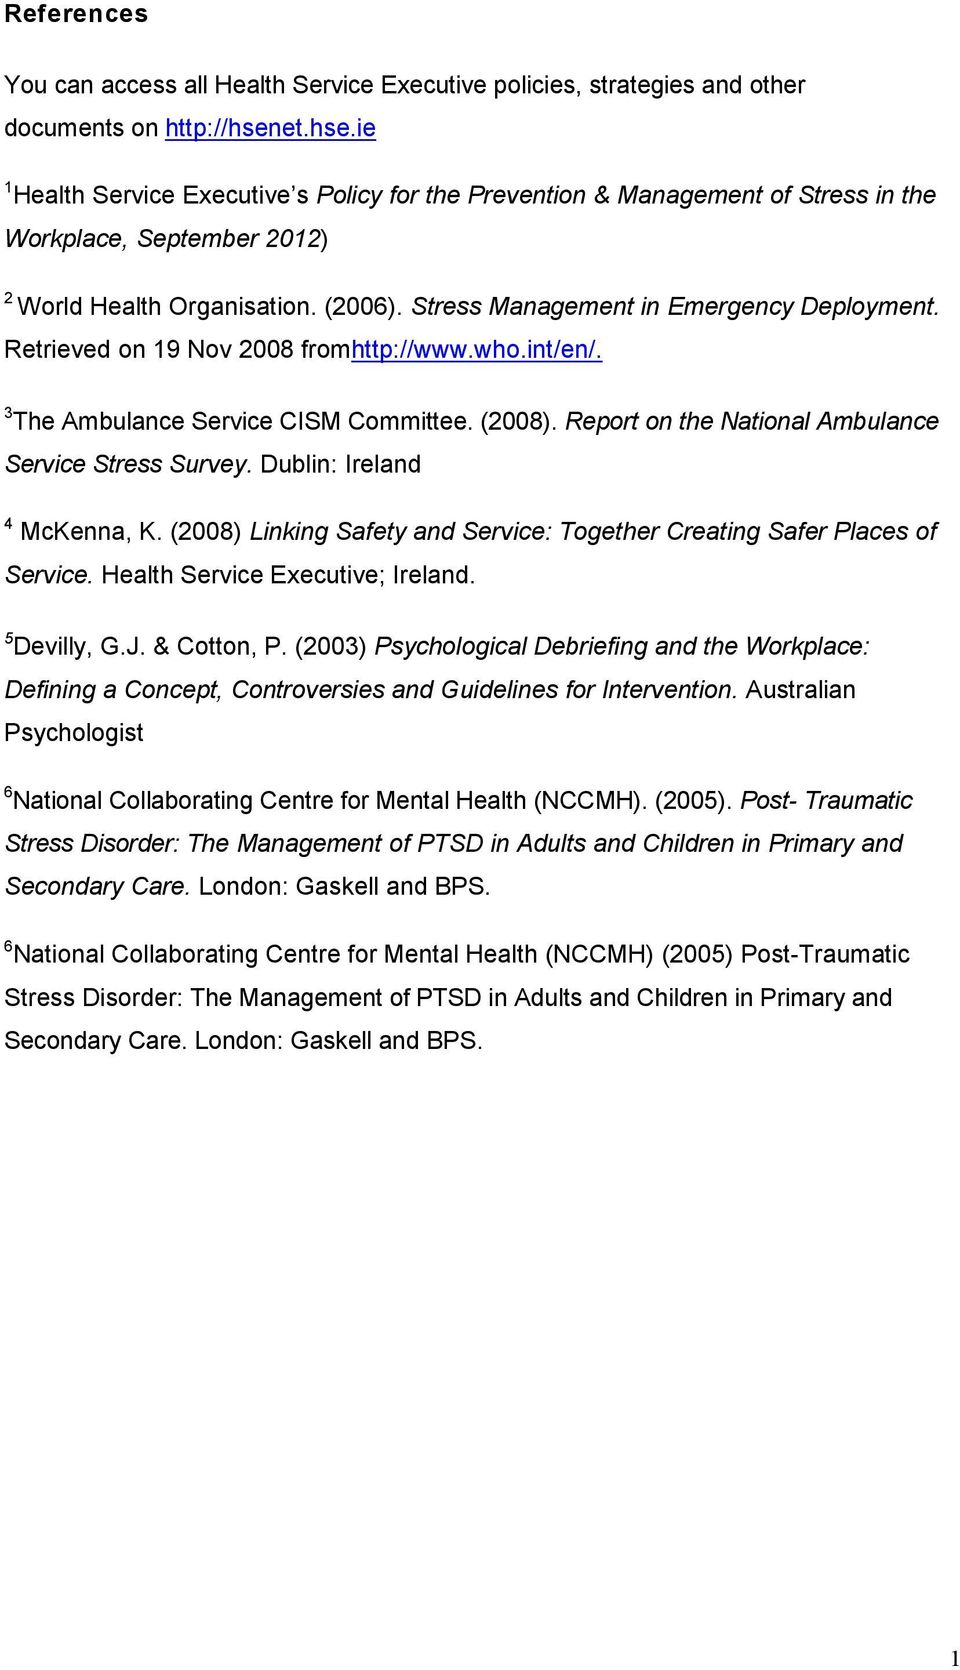 Stress Management in Emergency Deployment. Retrieved on 19 Nov 2008 fromhttp://www.who.int/en/. 3 The Ambulance Service CISM Committee. (2008). Report on the National Ambulance Service Stress Survey.